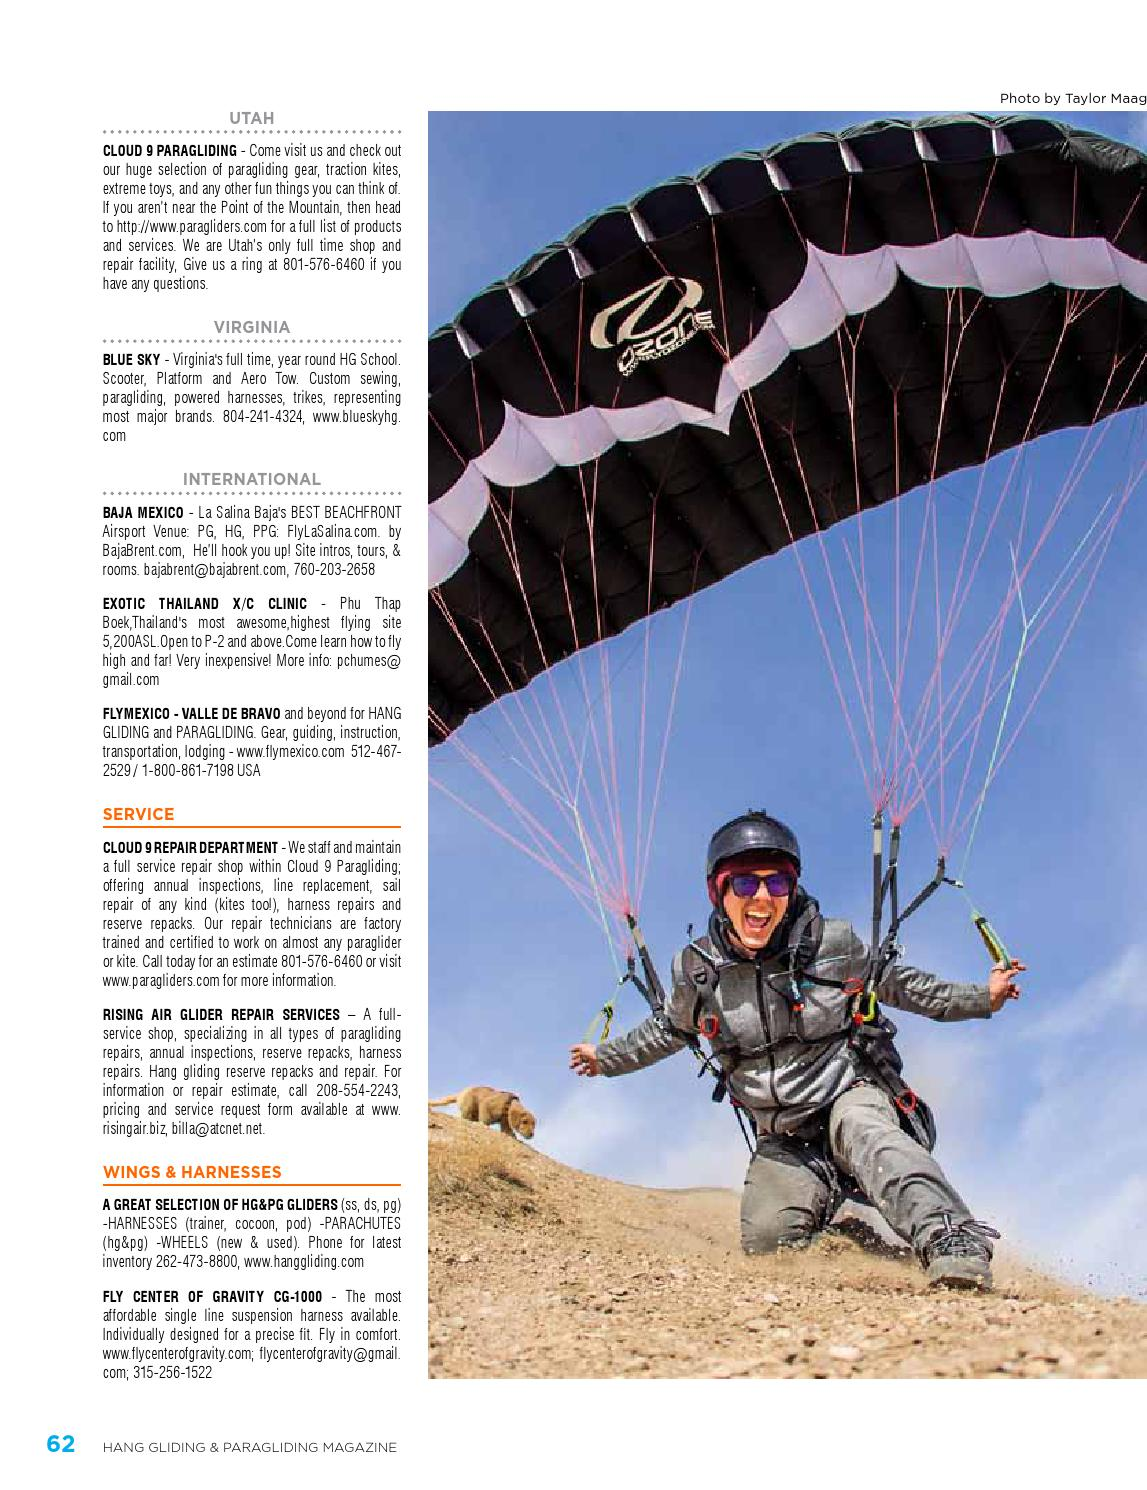 Hang Gliding Paragliding Vol46 Iss3 May Jun 2016 By Us Scooter Tow Harness Association Issuu